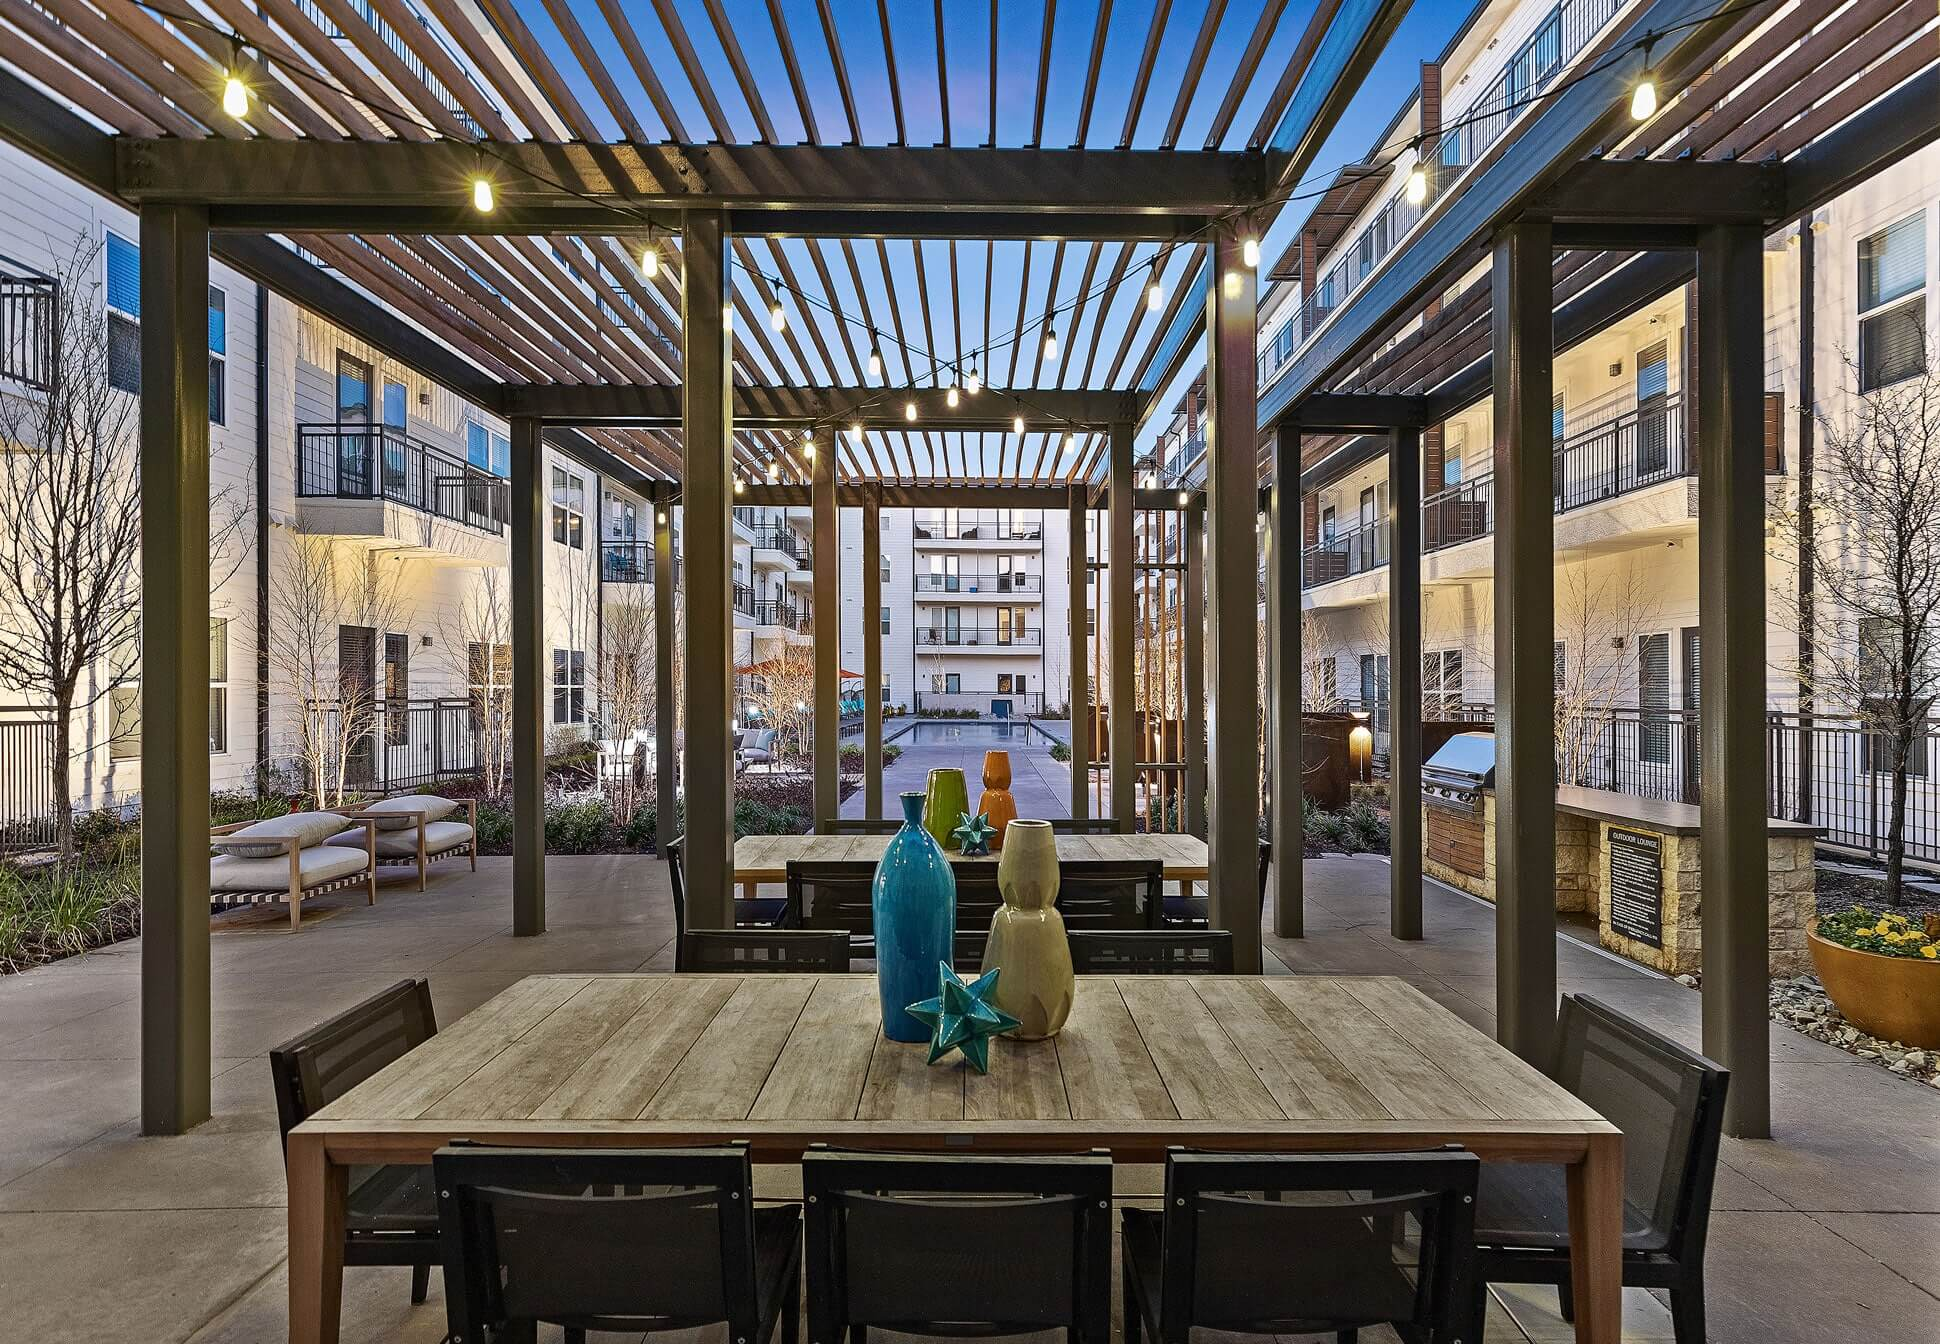 Outdoor courtyard area with covered seating and tables, patio lights, and community grill